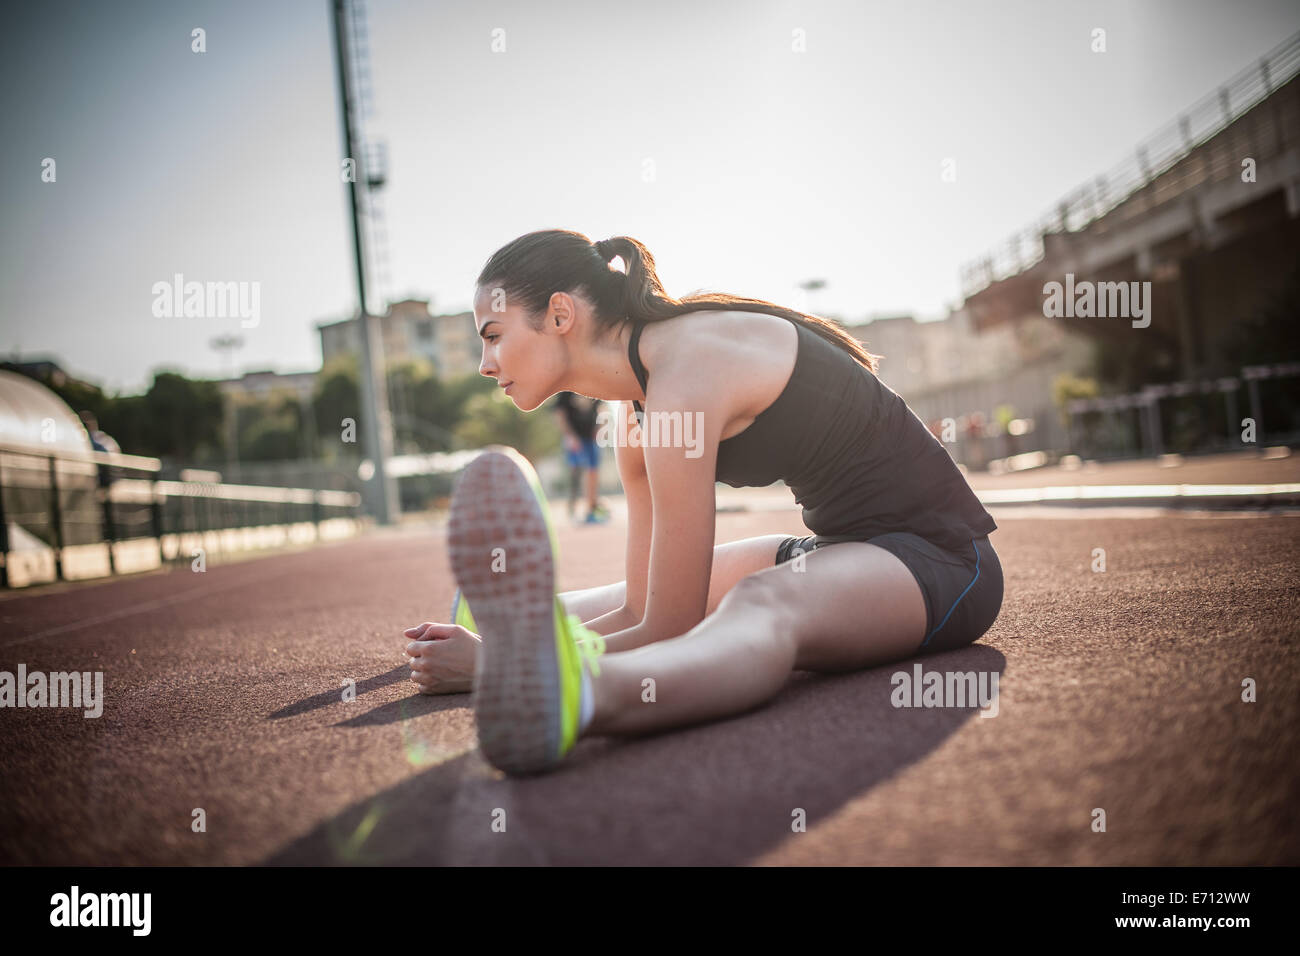 Woman sitting on floor stretching legs - Stock Image